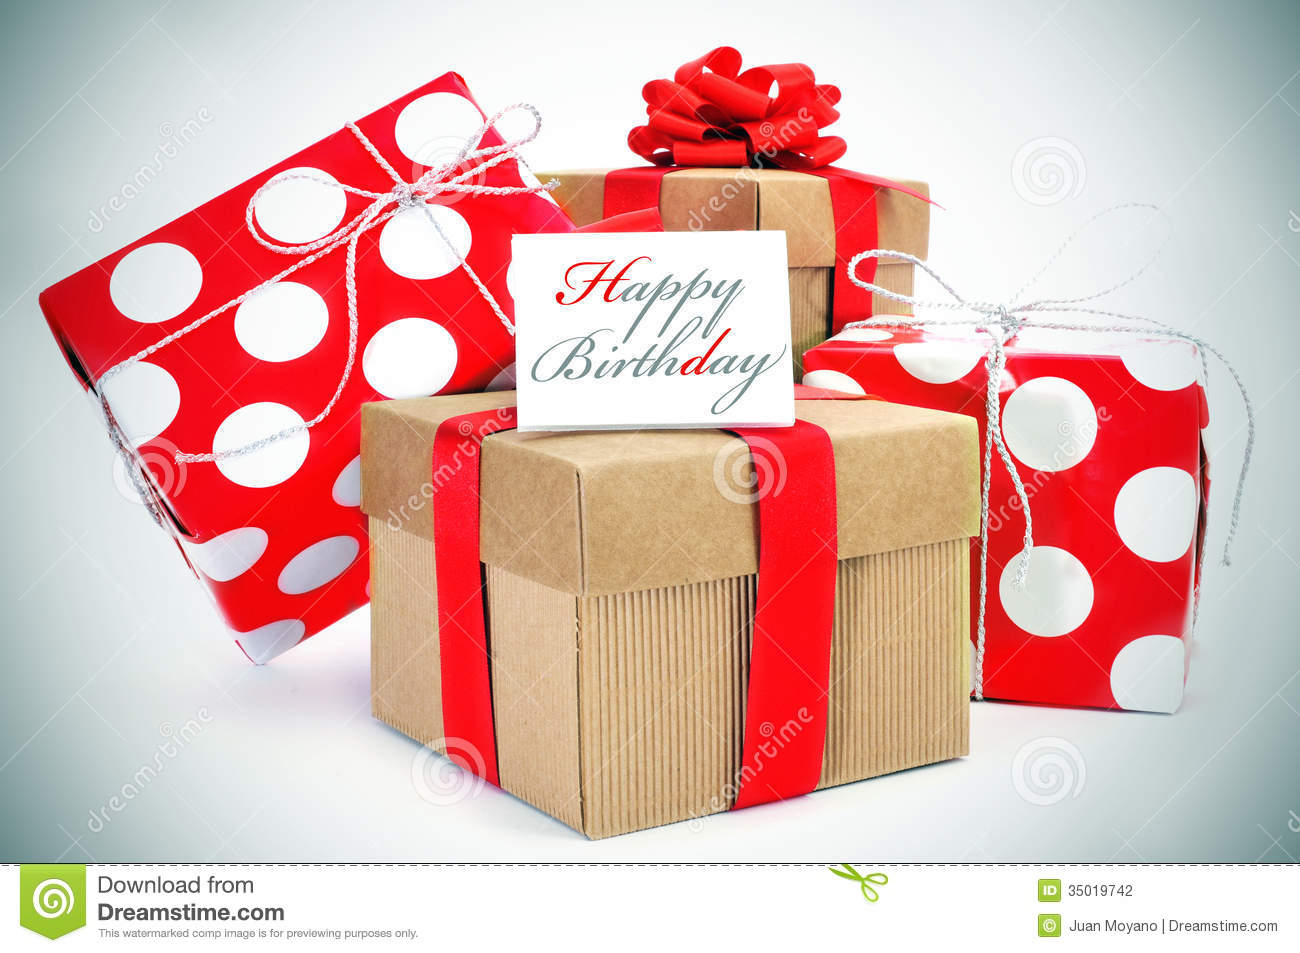 Happy birthday stock photo. Image of package, concept ...